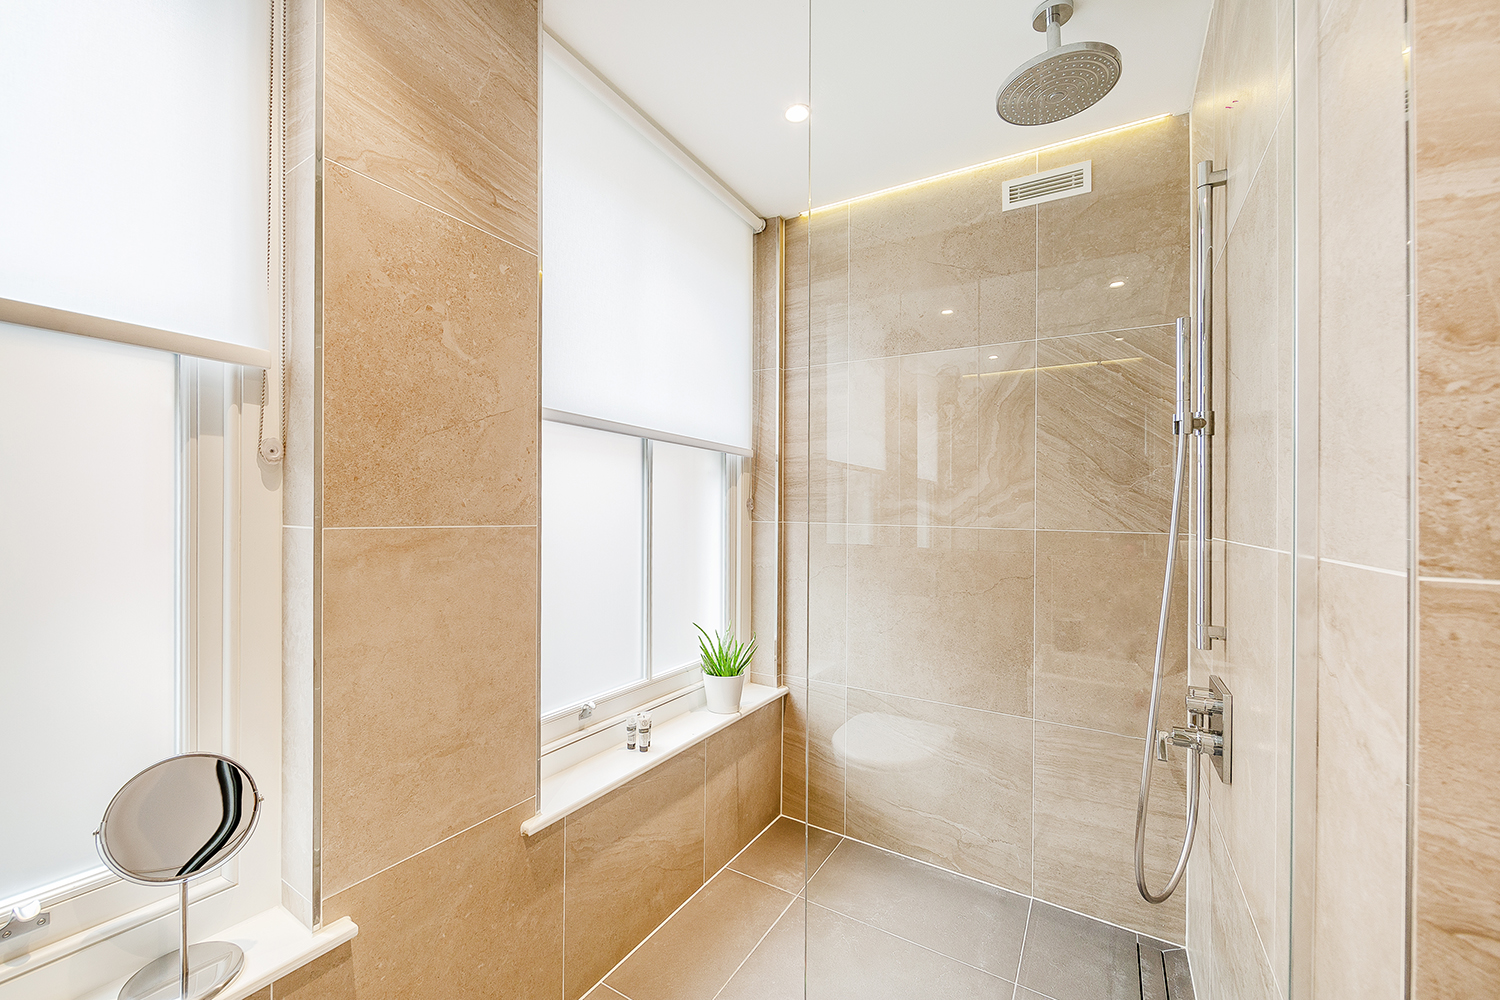 Modern bathroom at Floral Street Serviced Apartments, Covent Garden, London